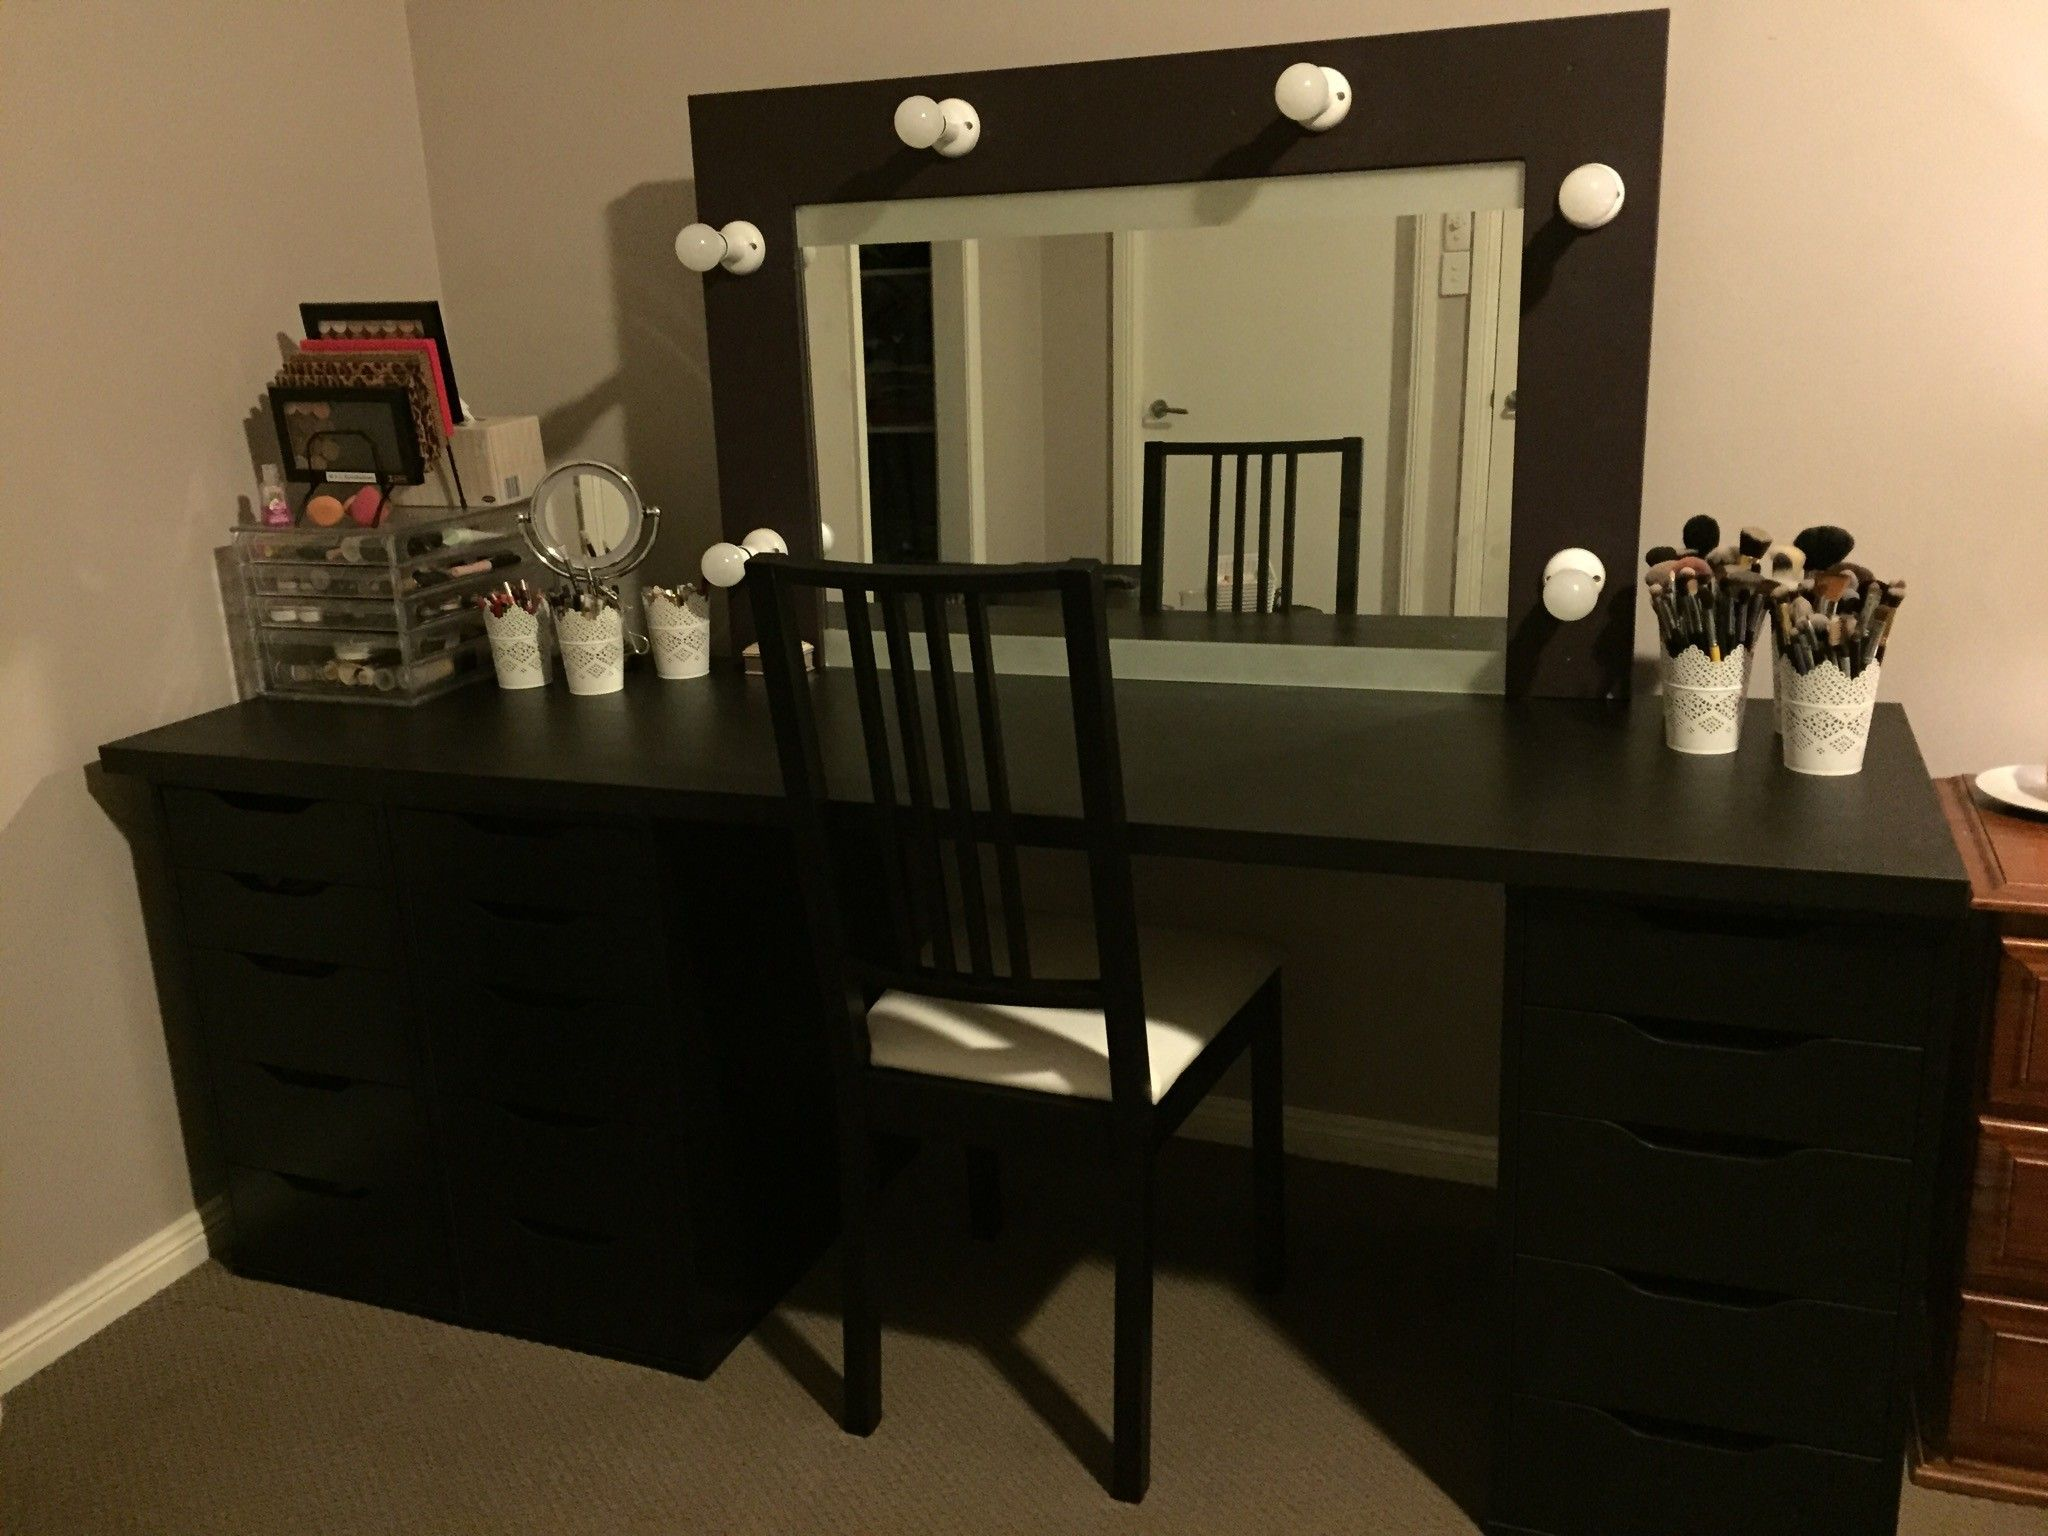 large makeup vanity with drawers. Furniture  dashing large black wooden makeup vanity with drawers and lighting in grey bedroom